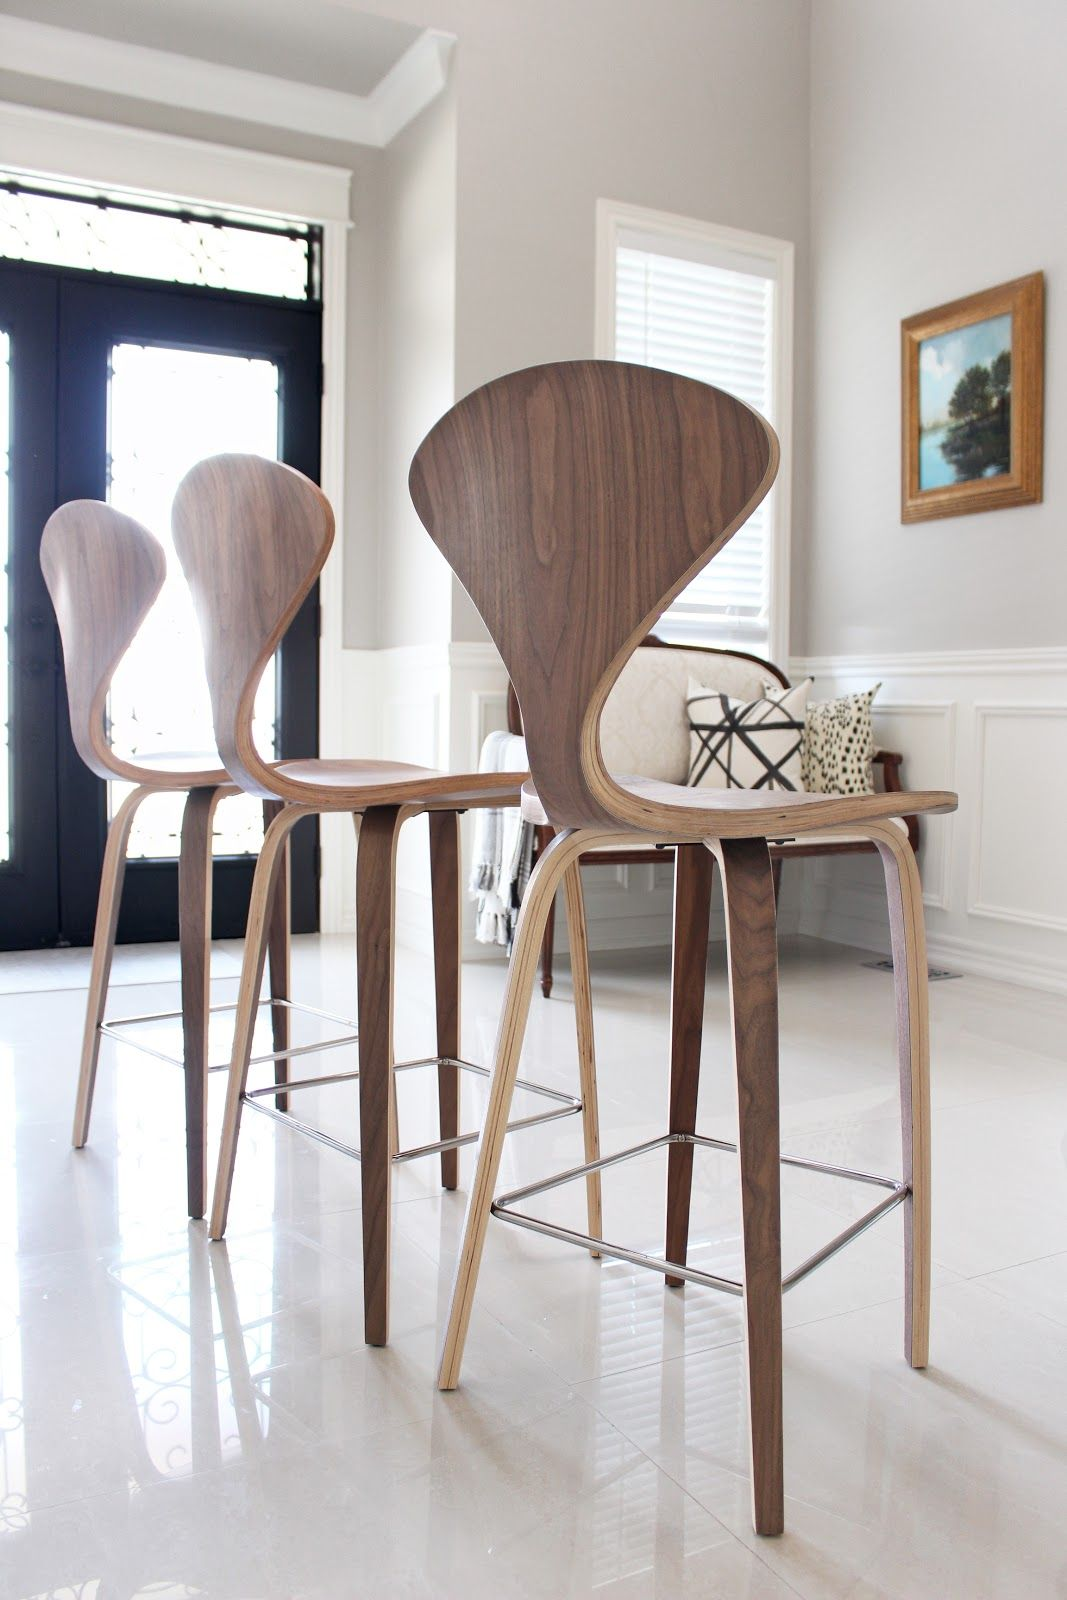 Norman Cherner Style Counter Stools In Walnut From Rove Concepts